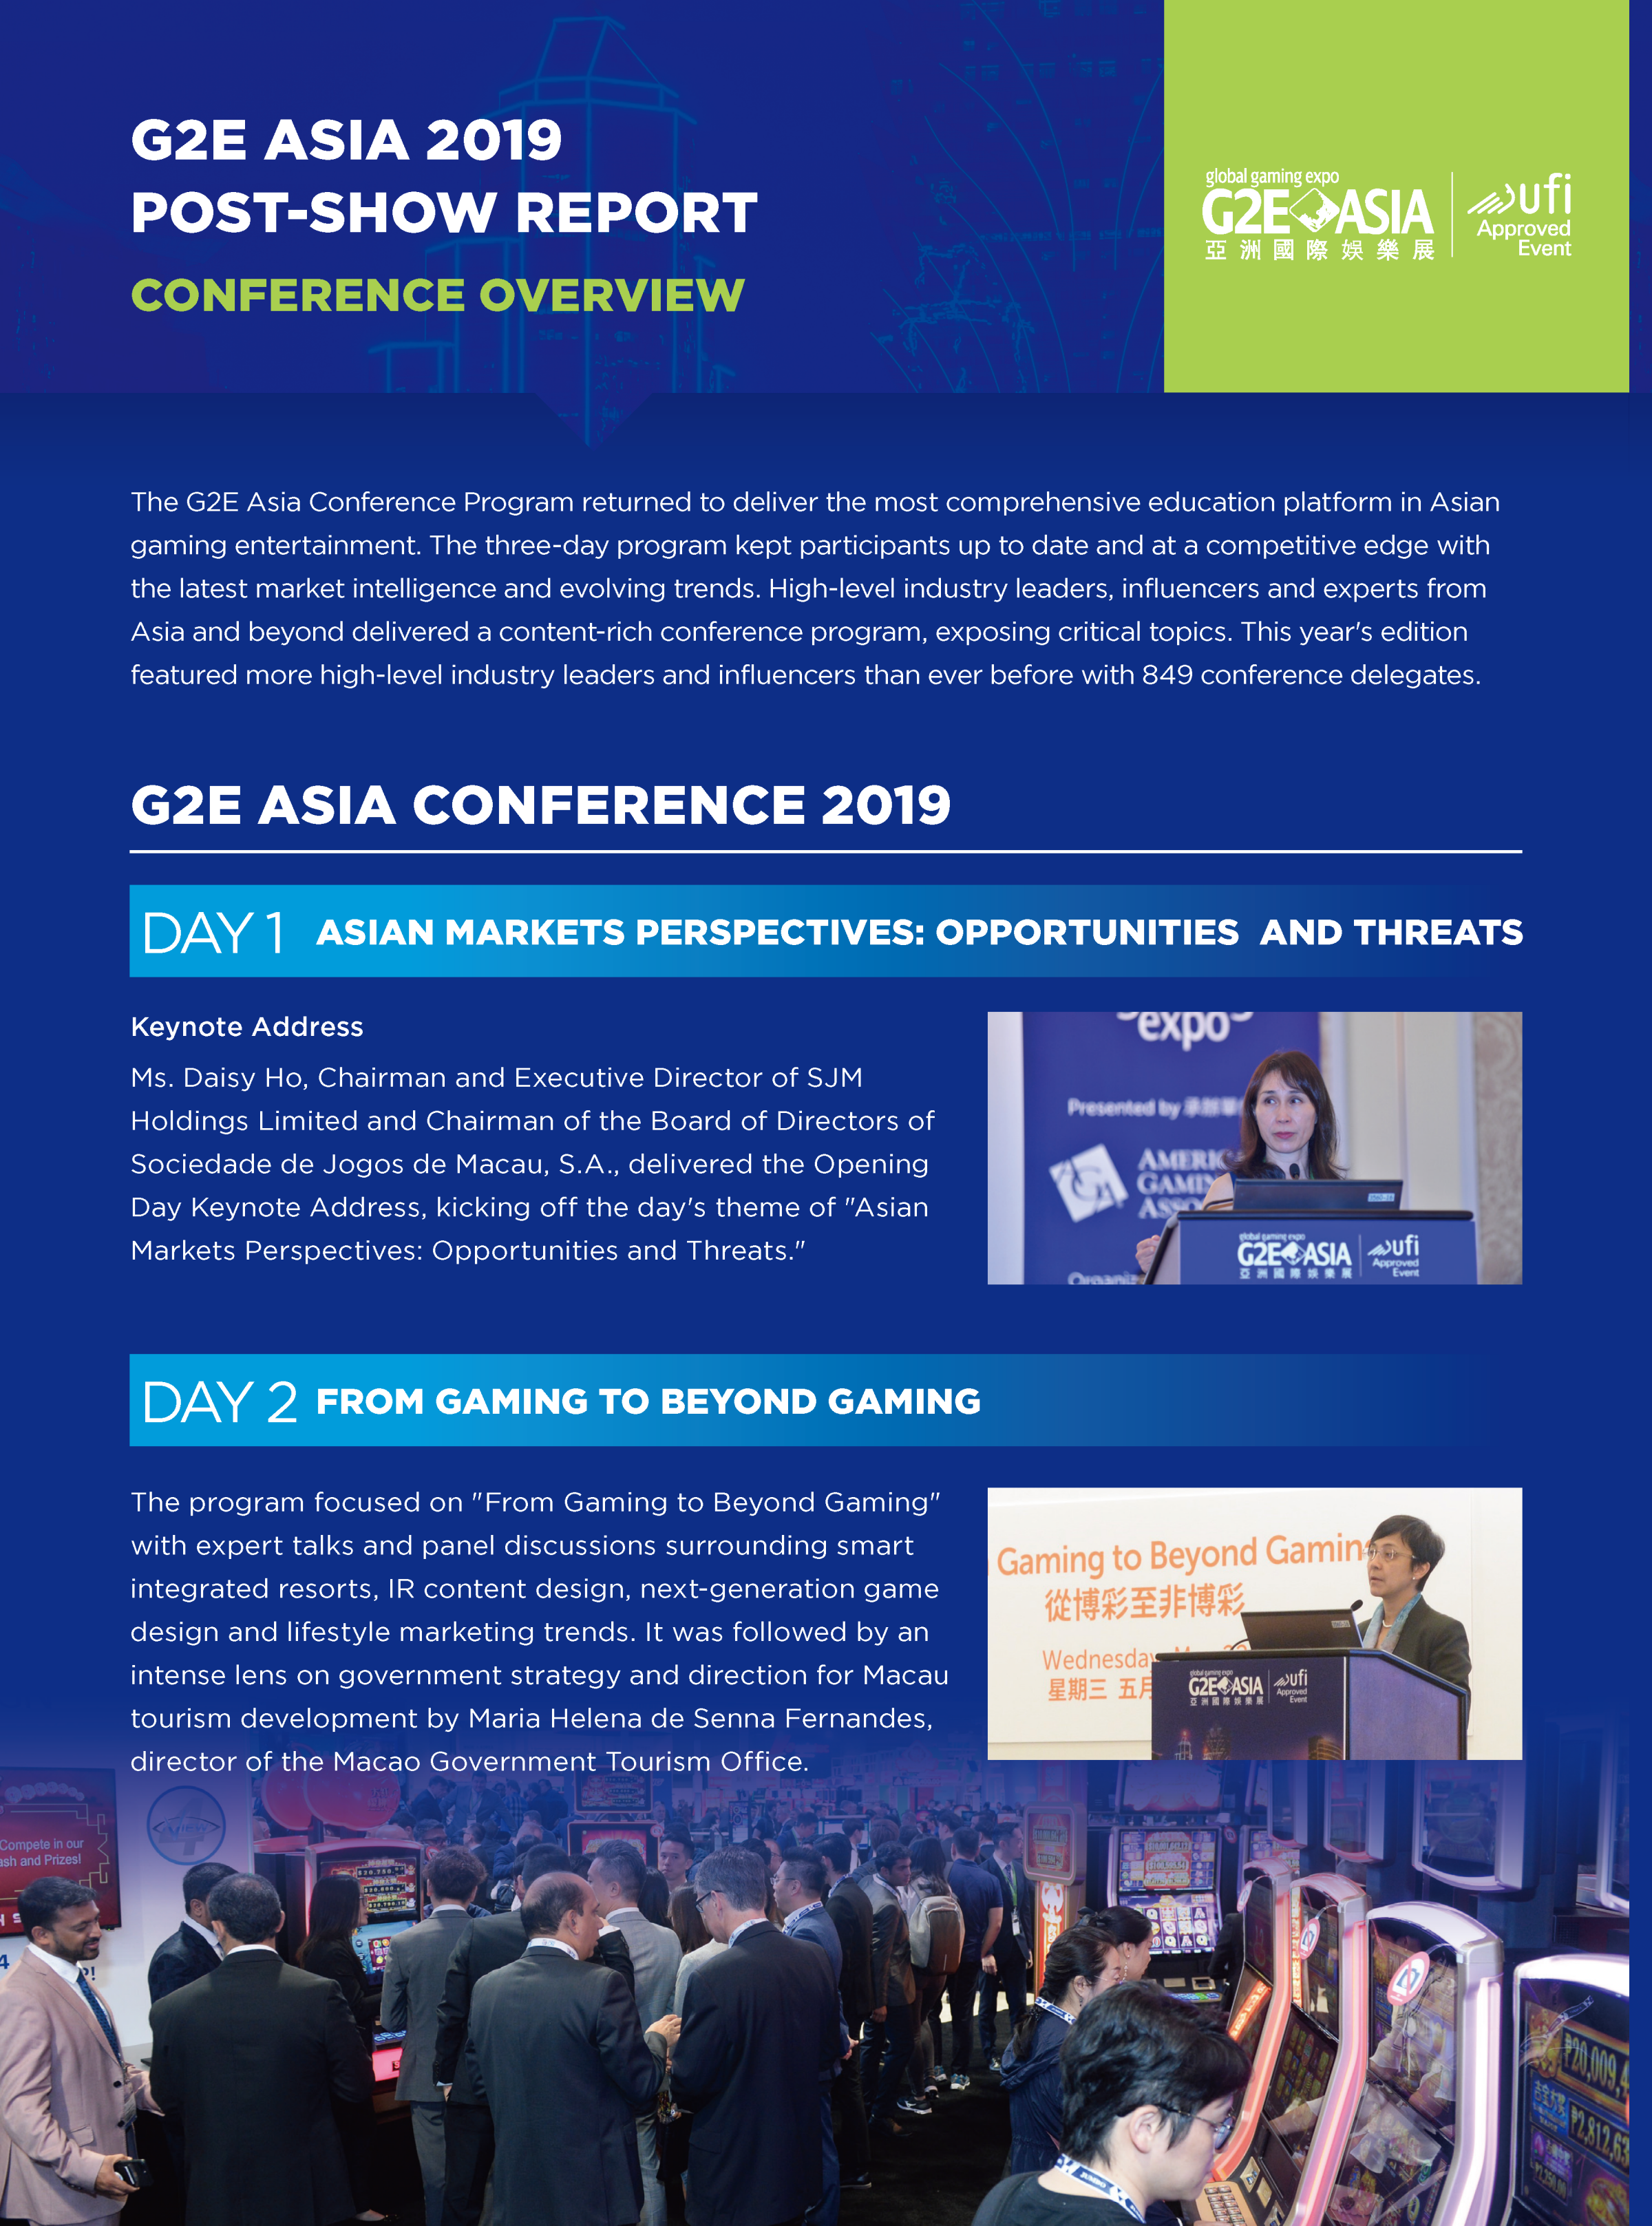 G2E Asia 2019 CONFERENCE OVERVIEW